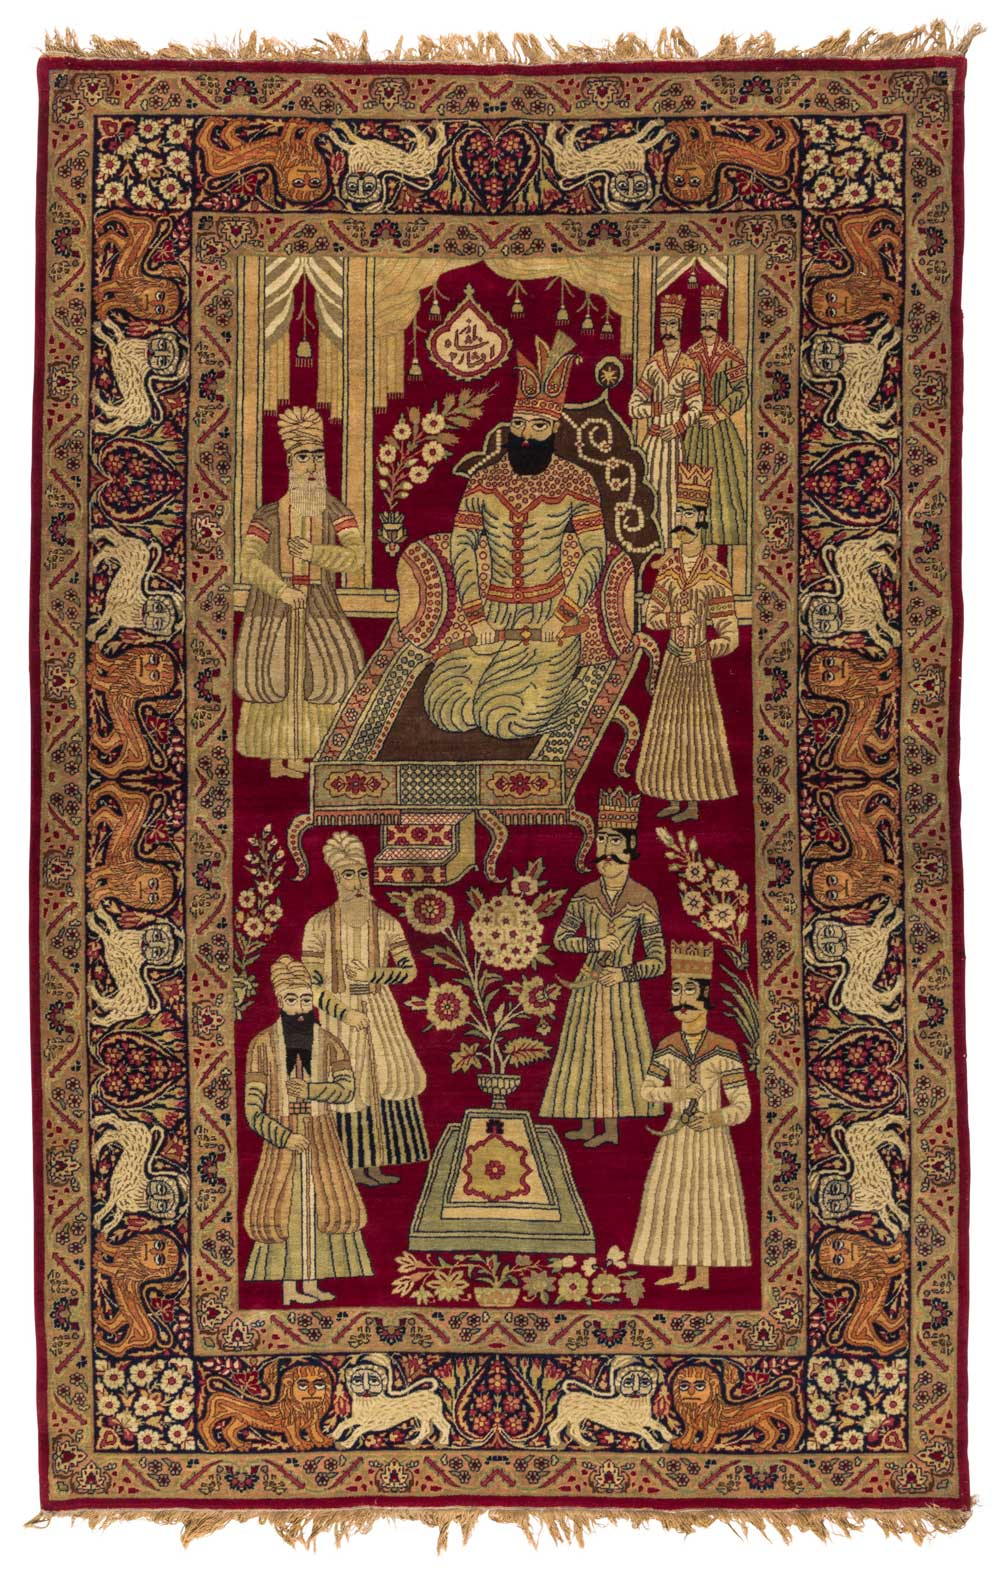 Kerman Pictorial Rug Southeast Iran Late 19th Century 240 X 140 Cm This Inscribed Portrays The Afsharid Shah Nader R